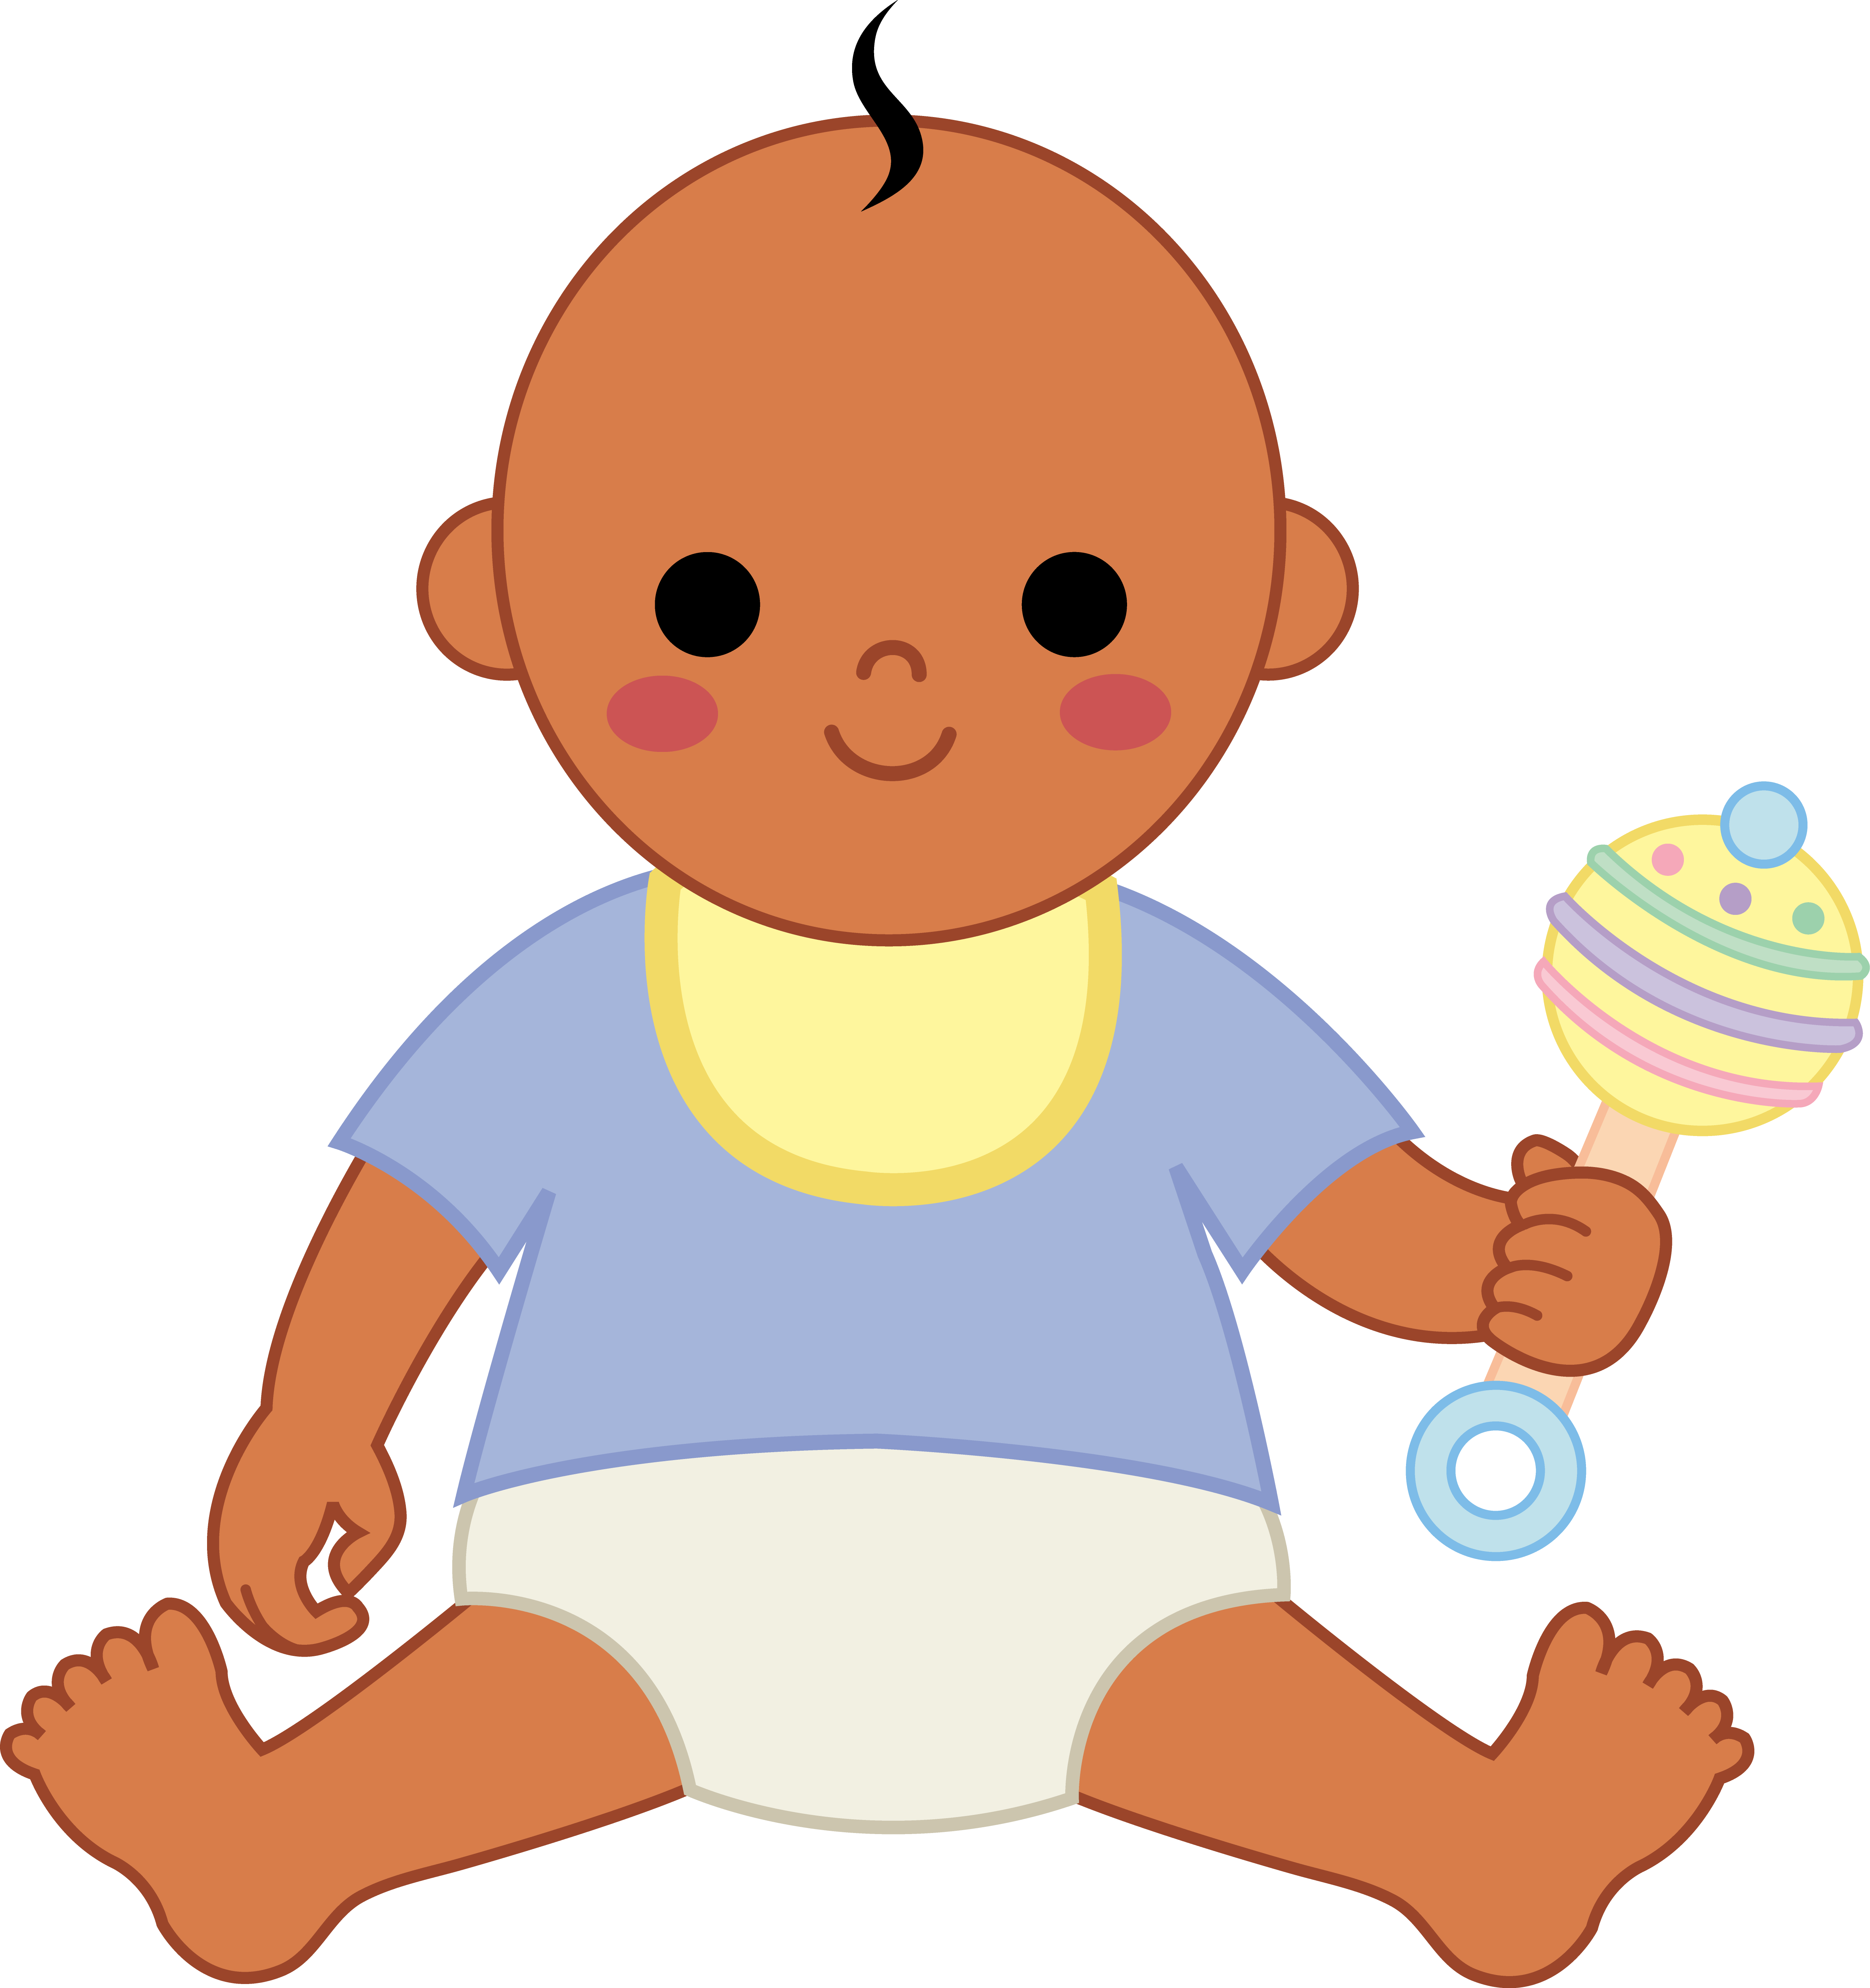 Clipart Baby U0026middot; Copyright Free-clipart baby u0026middot; copyright free clipart-10